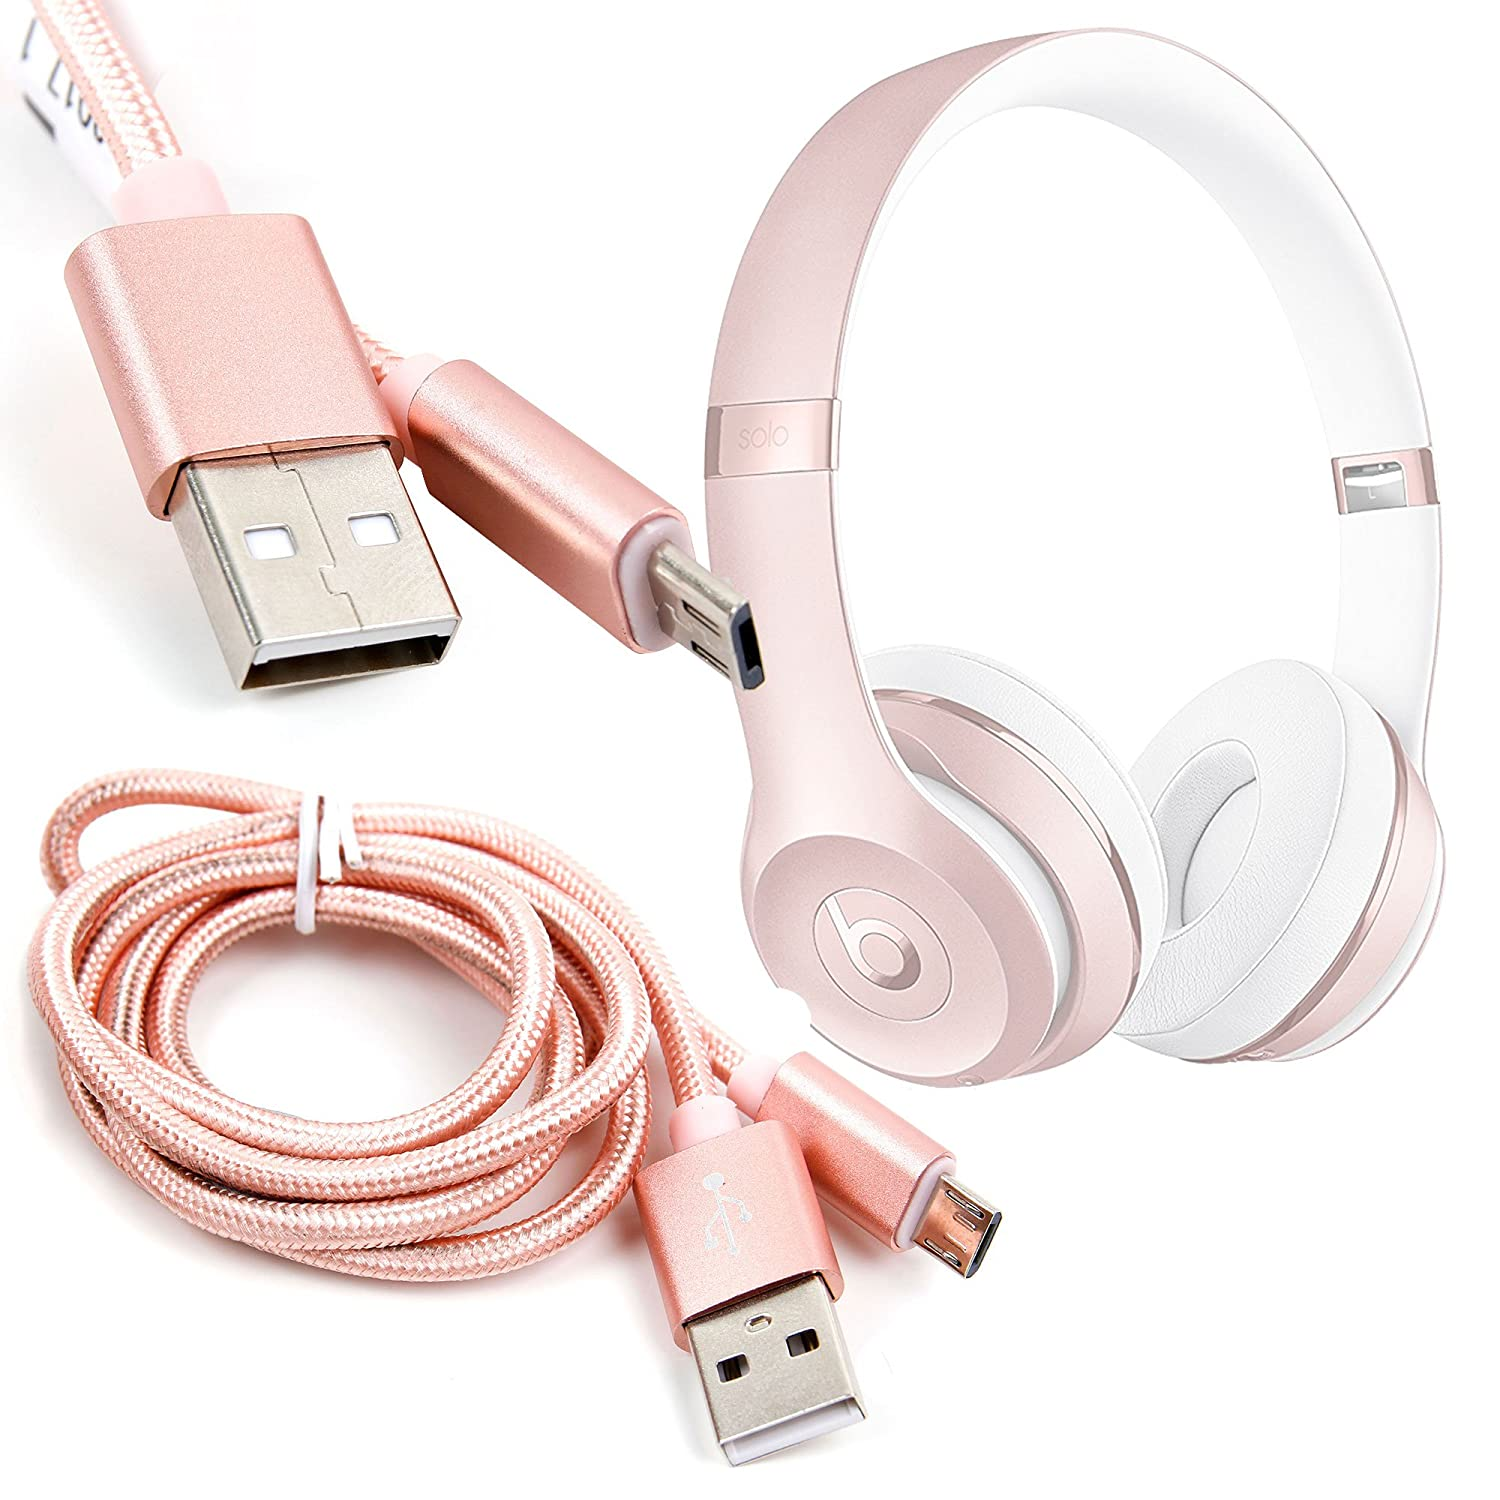 8a02ef5af7a DURAGADGET Rose Gold Micro USB Data Sync Cable - Compatible with The Beats  Headphones: Solo 3 Wireless, Studio Wireless, Studio 3 Wireless, Powerbeats2  ...